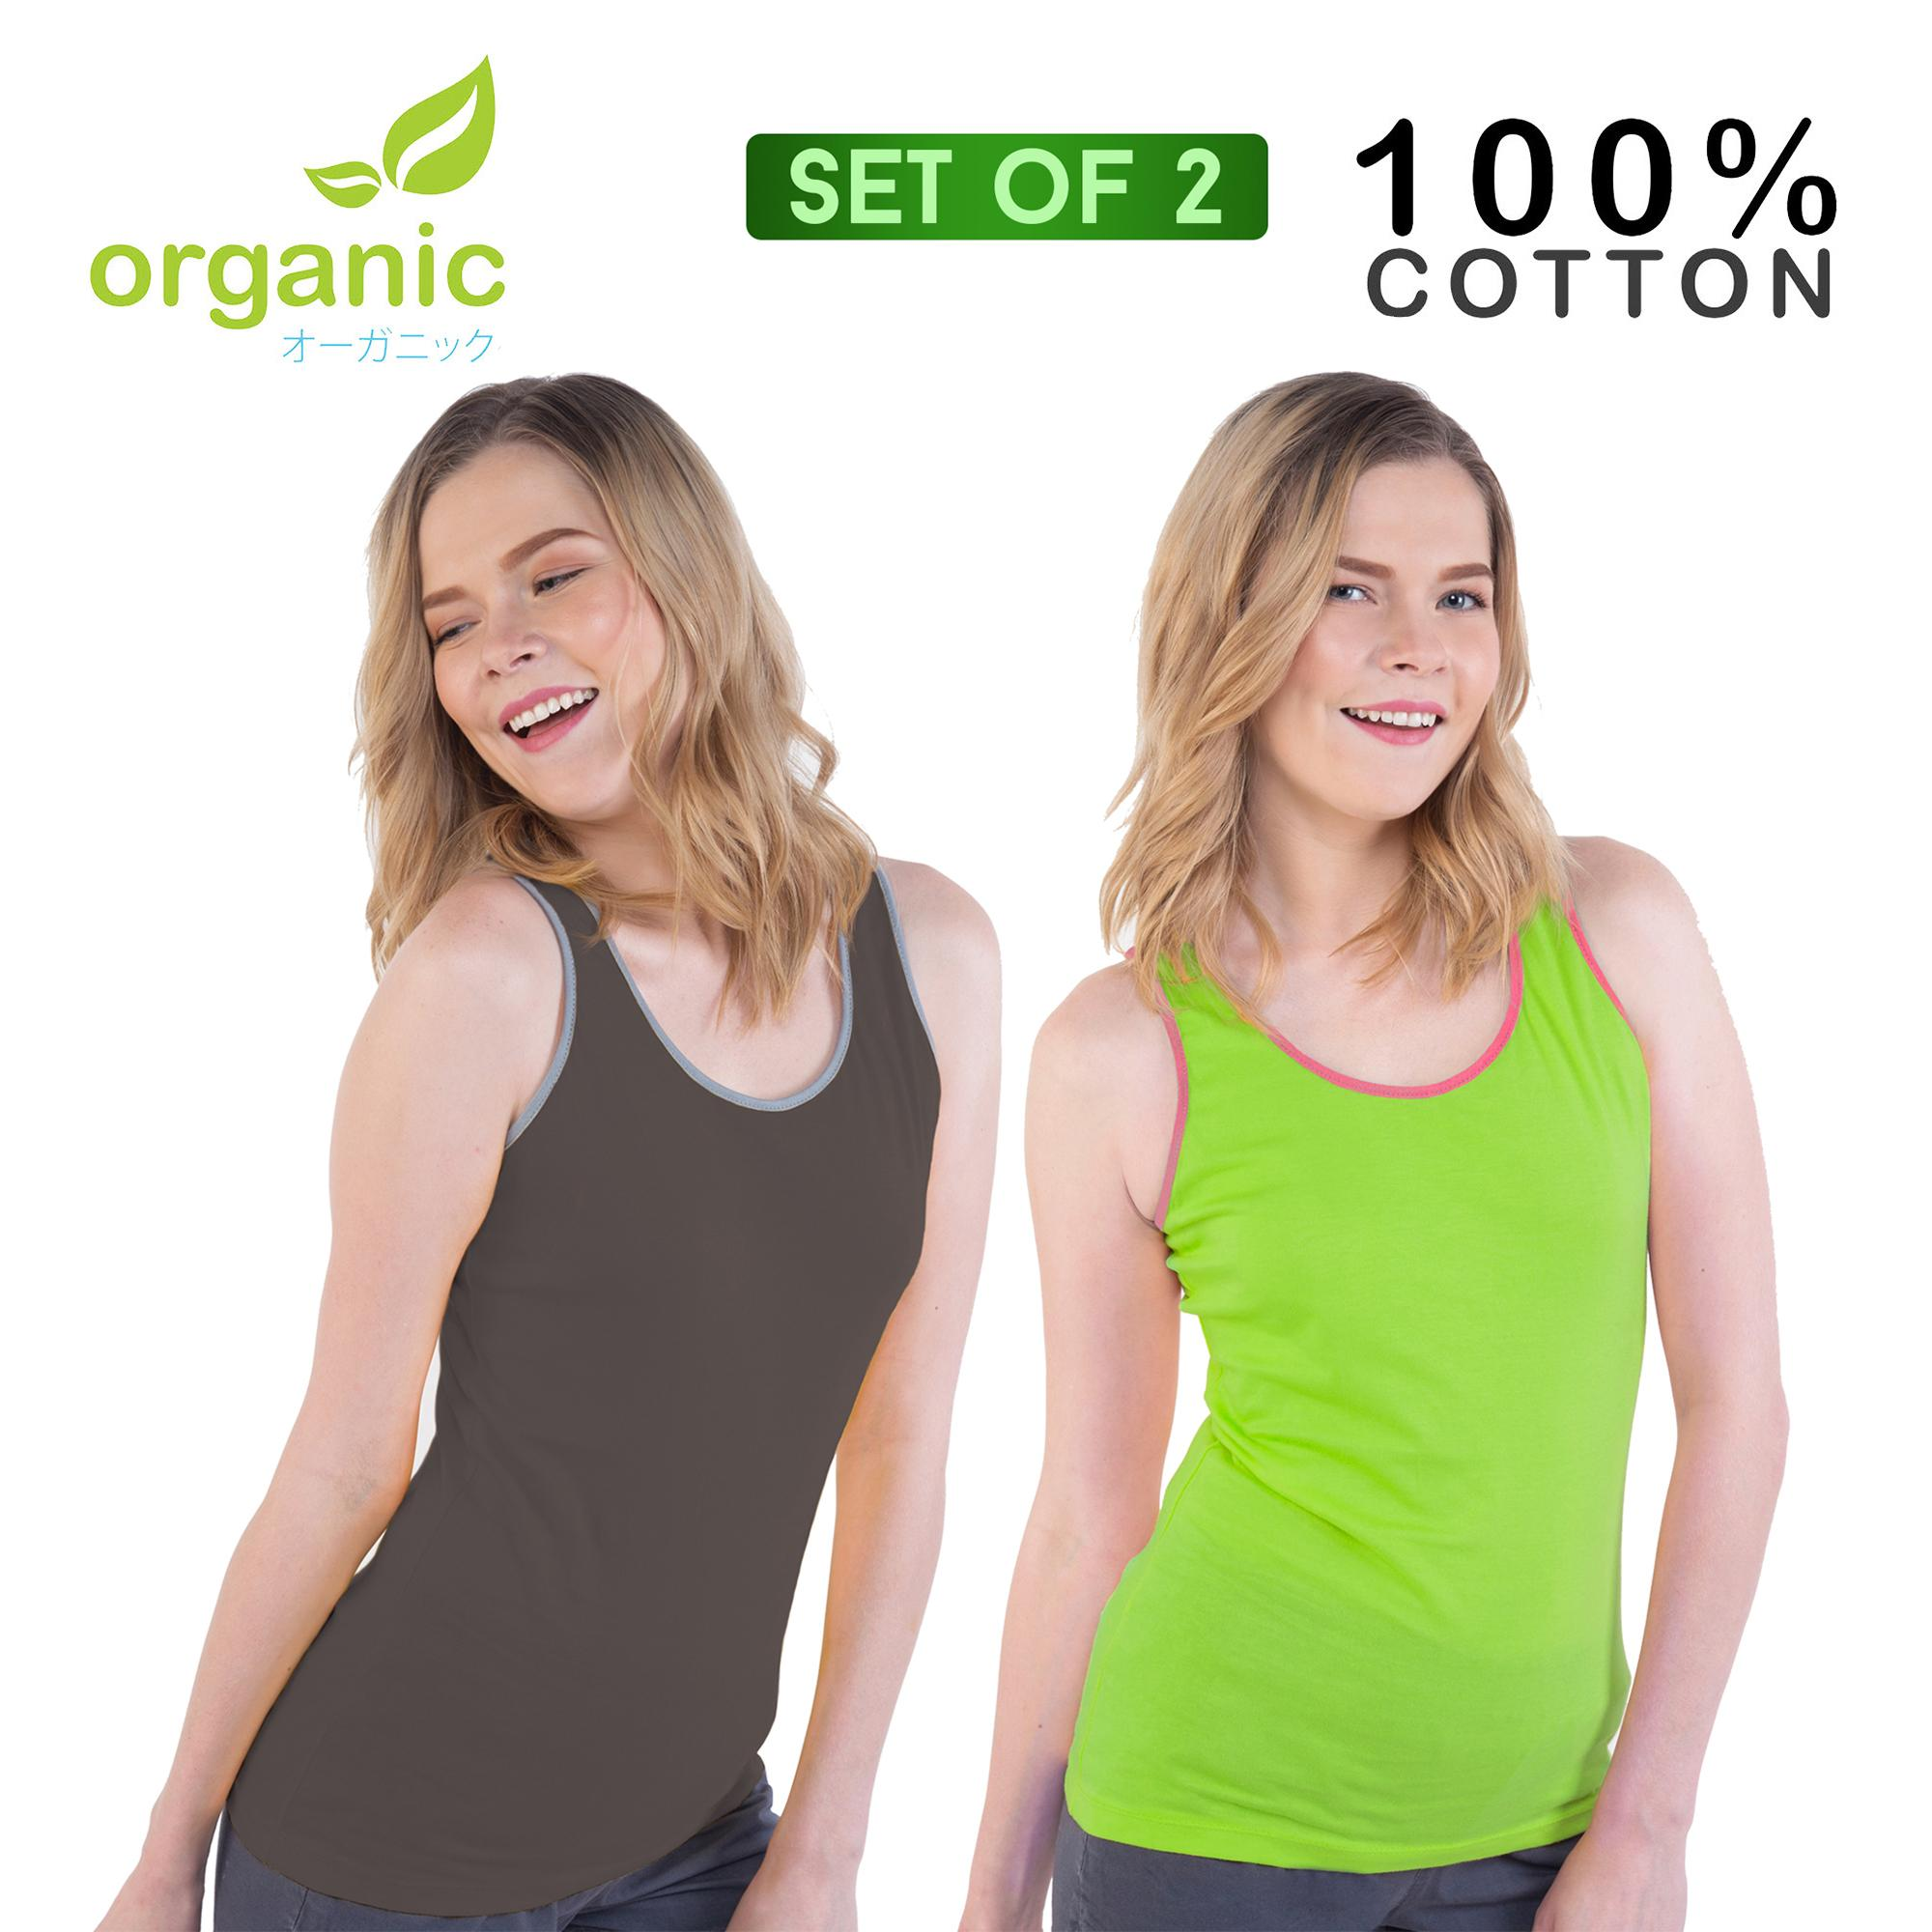 3d274c748db Organic Ladies (Set of 2) 100% Cotton Tank Top Sando Racerback Fashionable  Tees